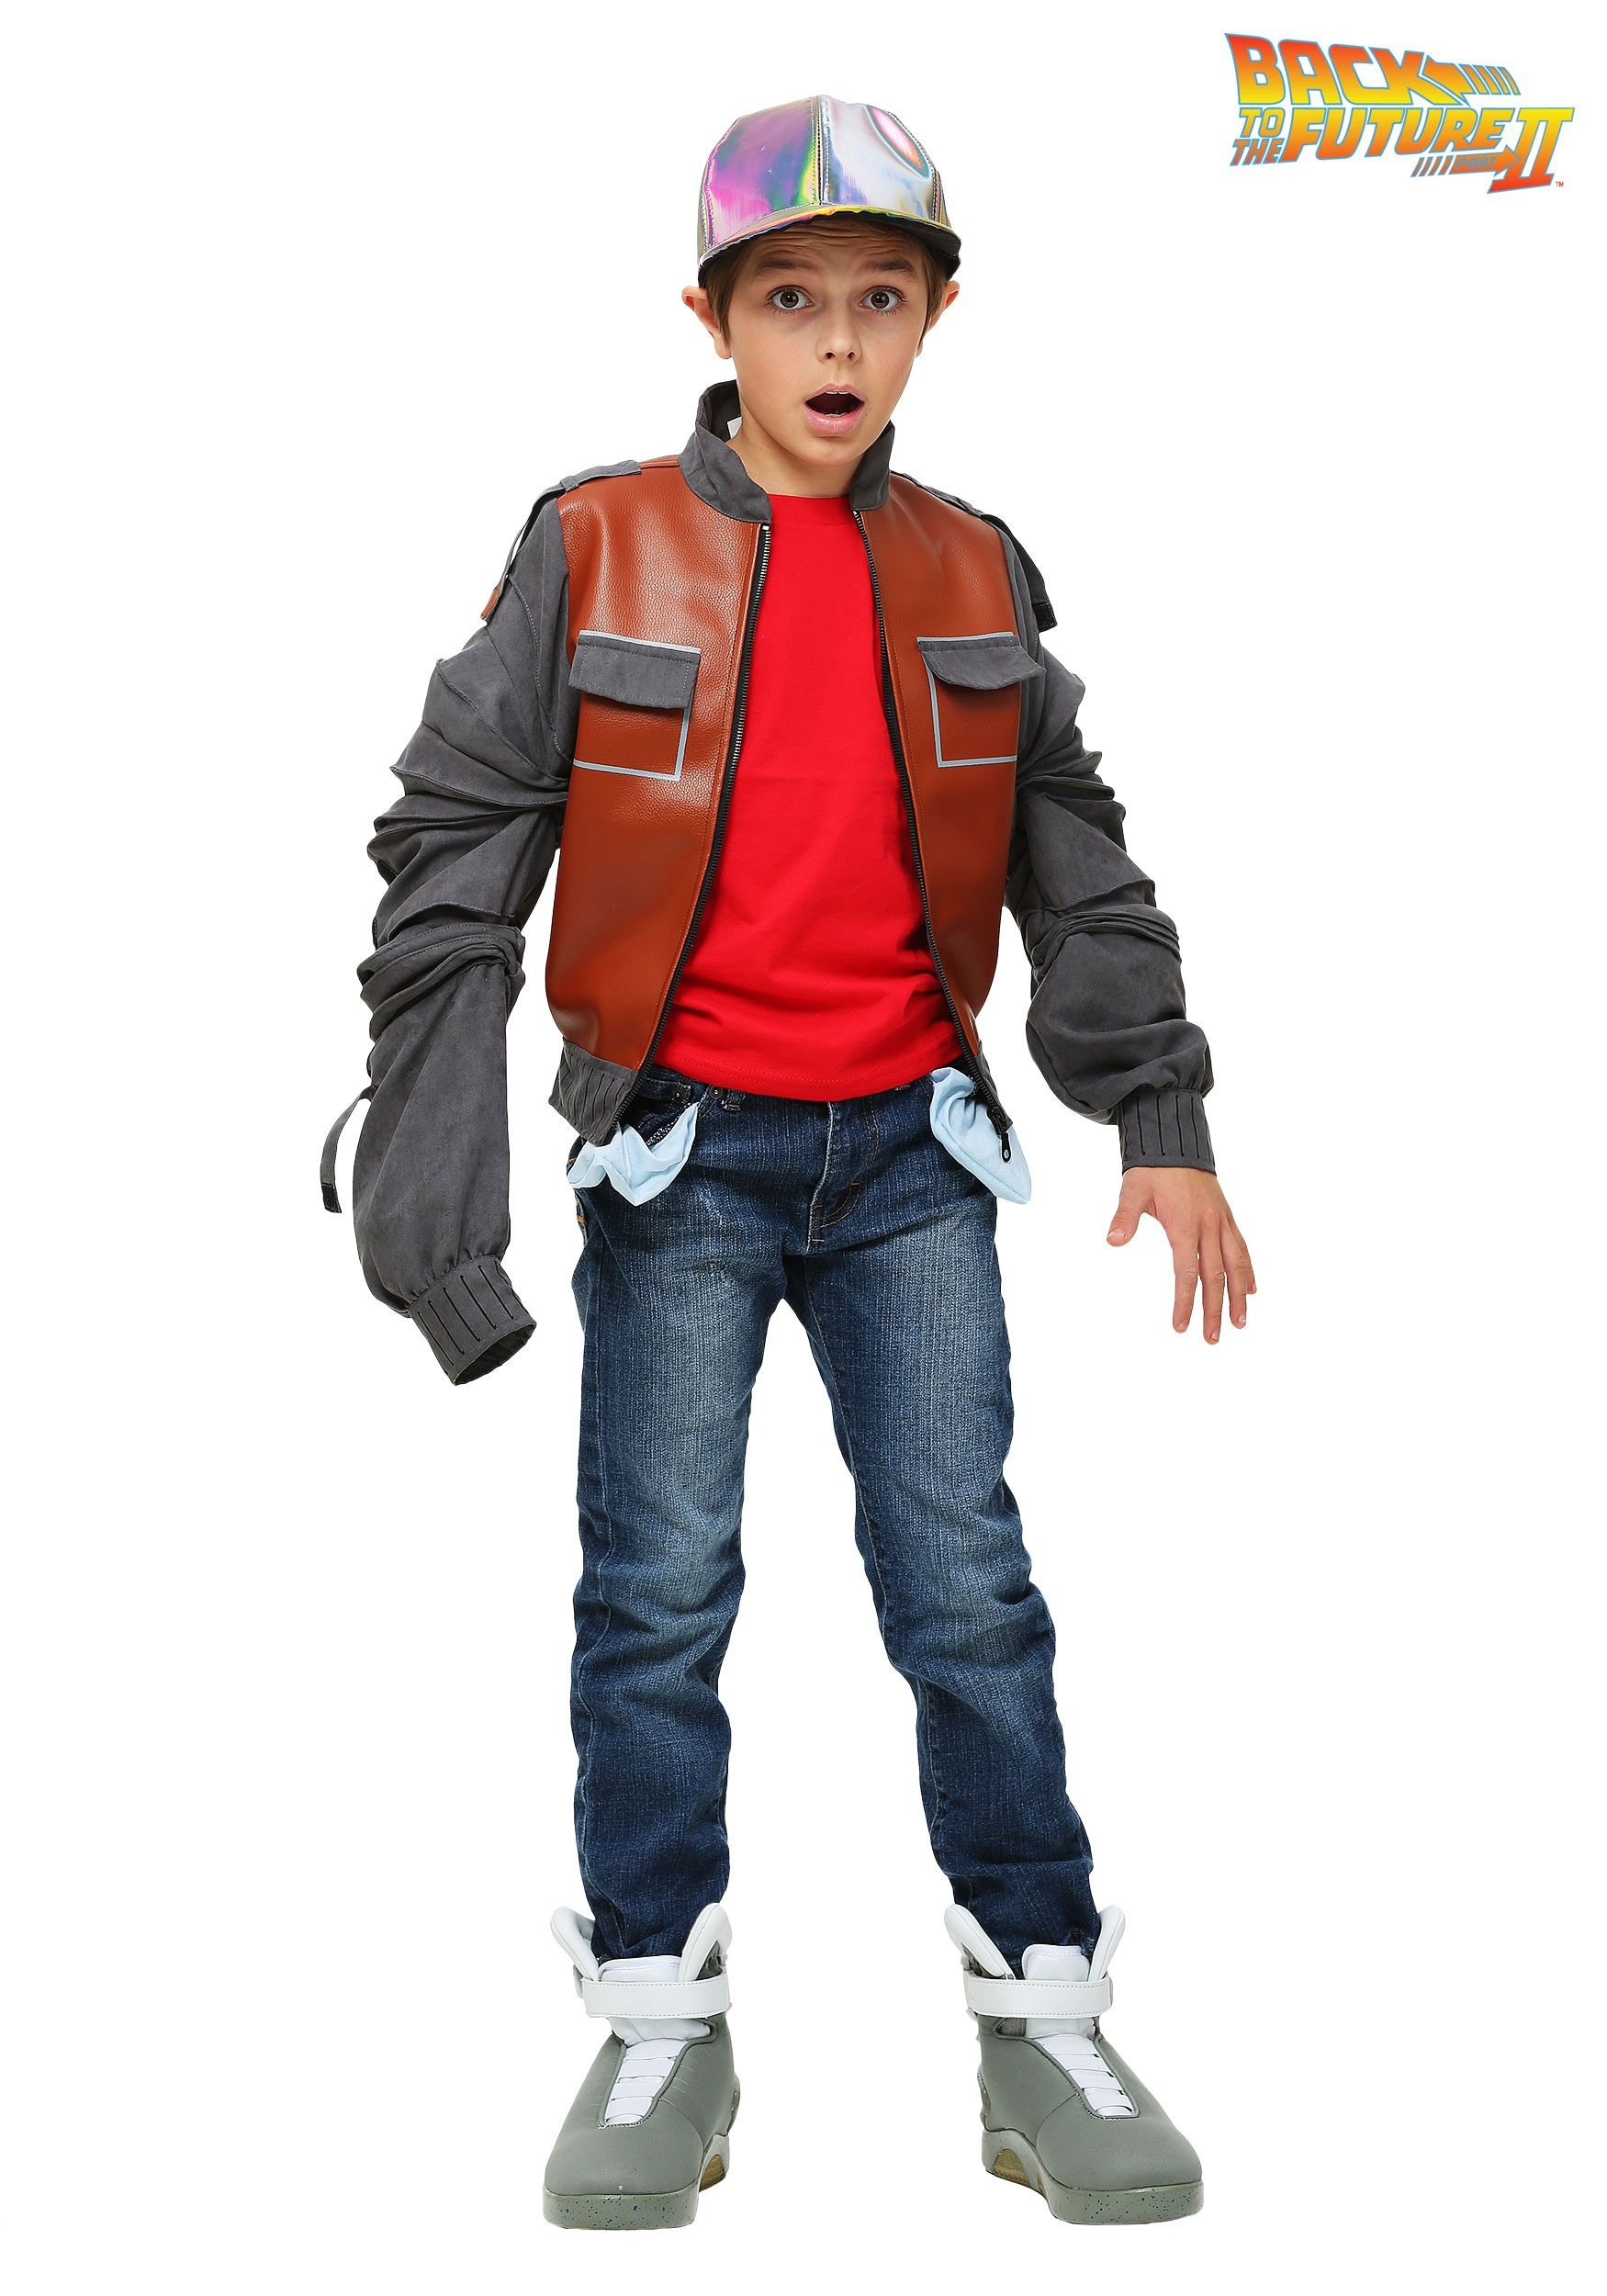 Marty Mcfly Costume Jacket For Kids From Back To The Future 2